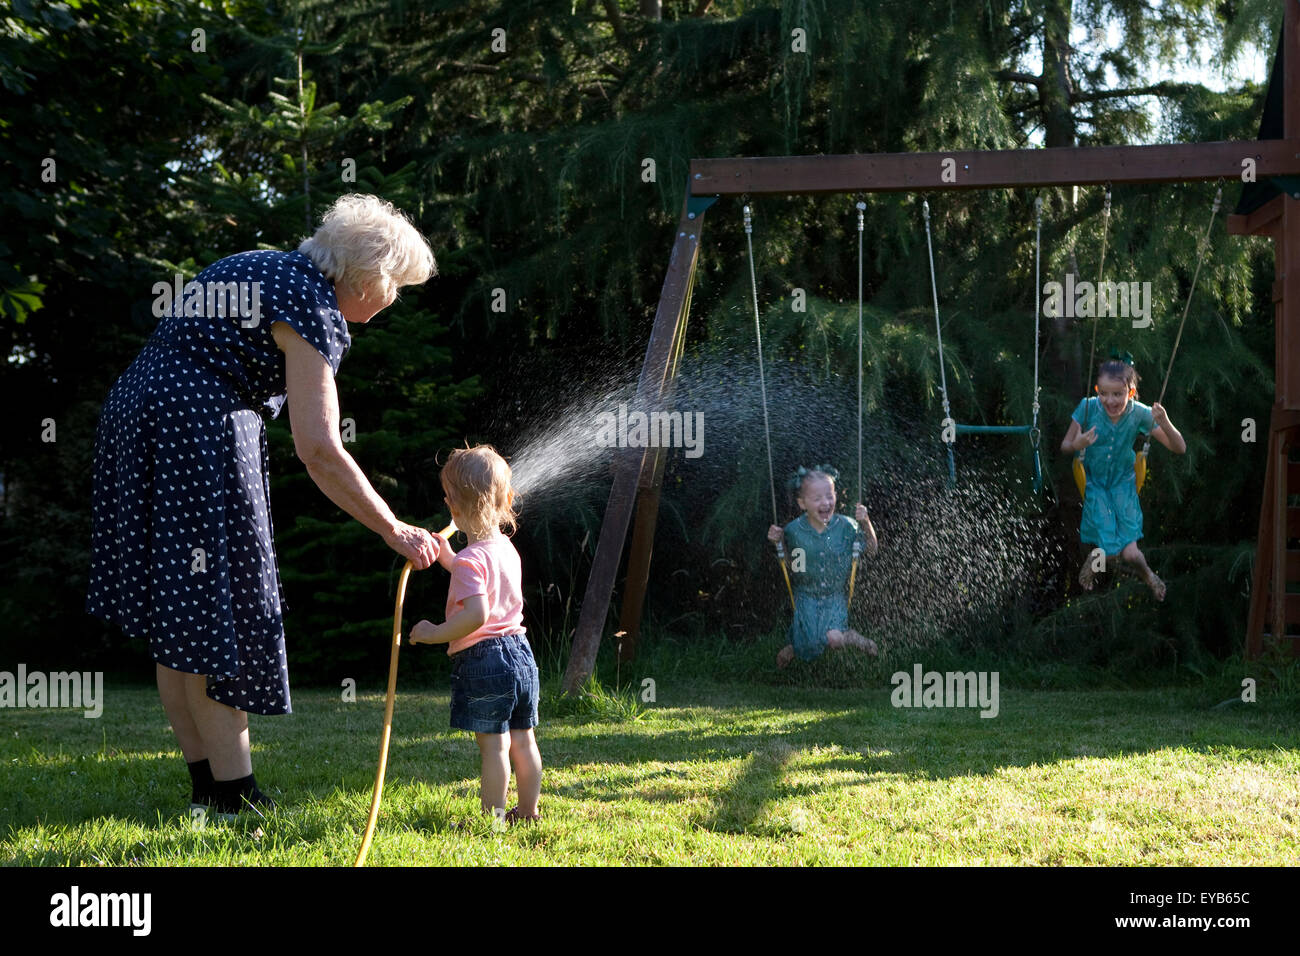 Family playing in garden with water hose in summer. - Stock Image